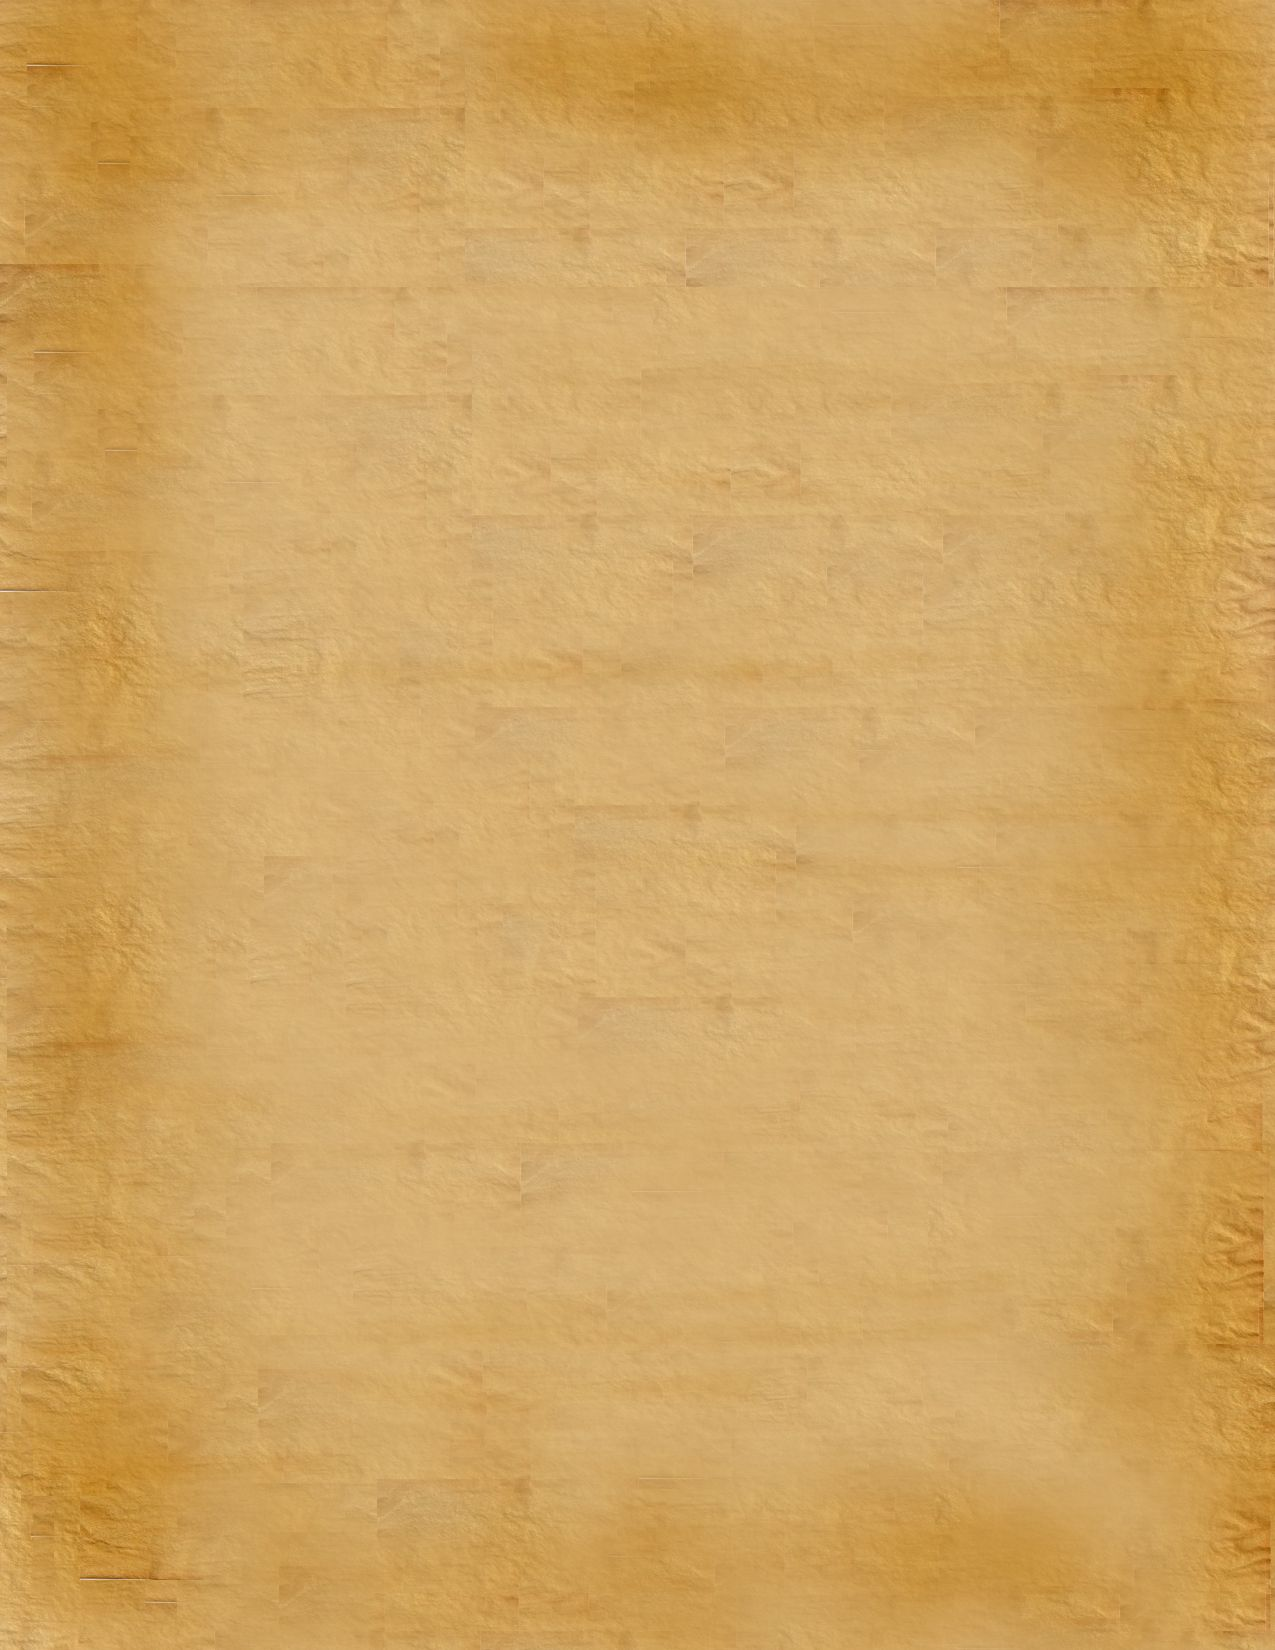 Parchment Paper Texture By Sinnedaria On Deviantart Game